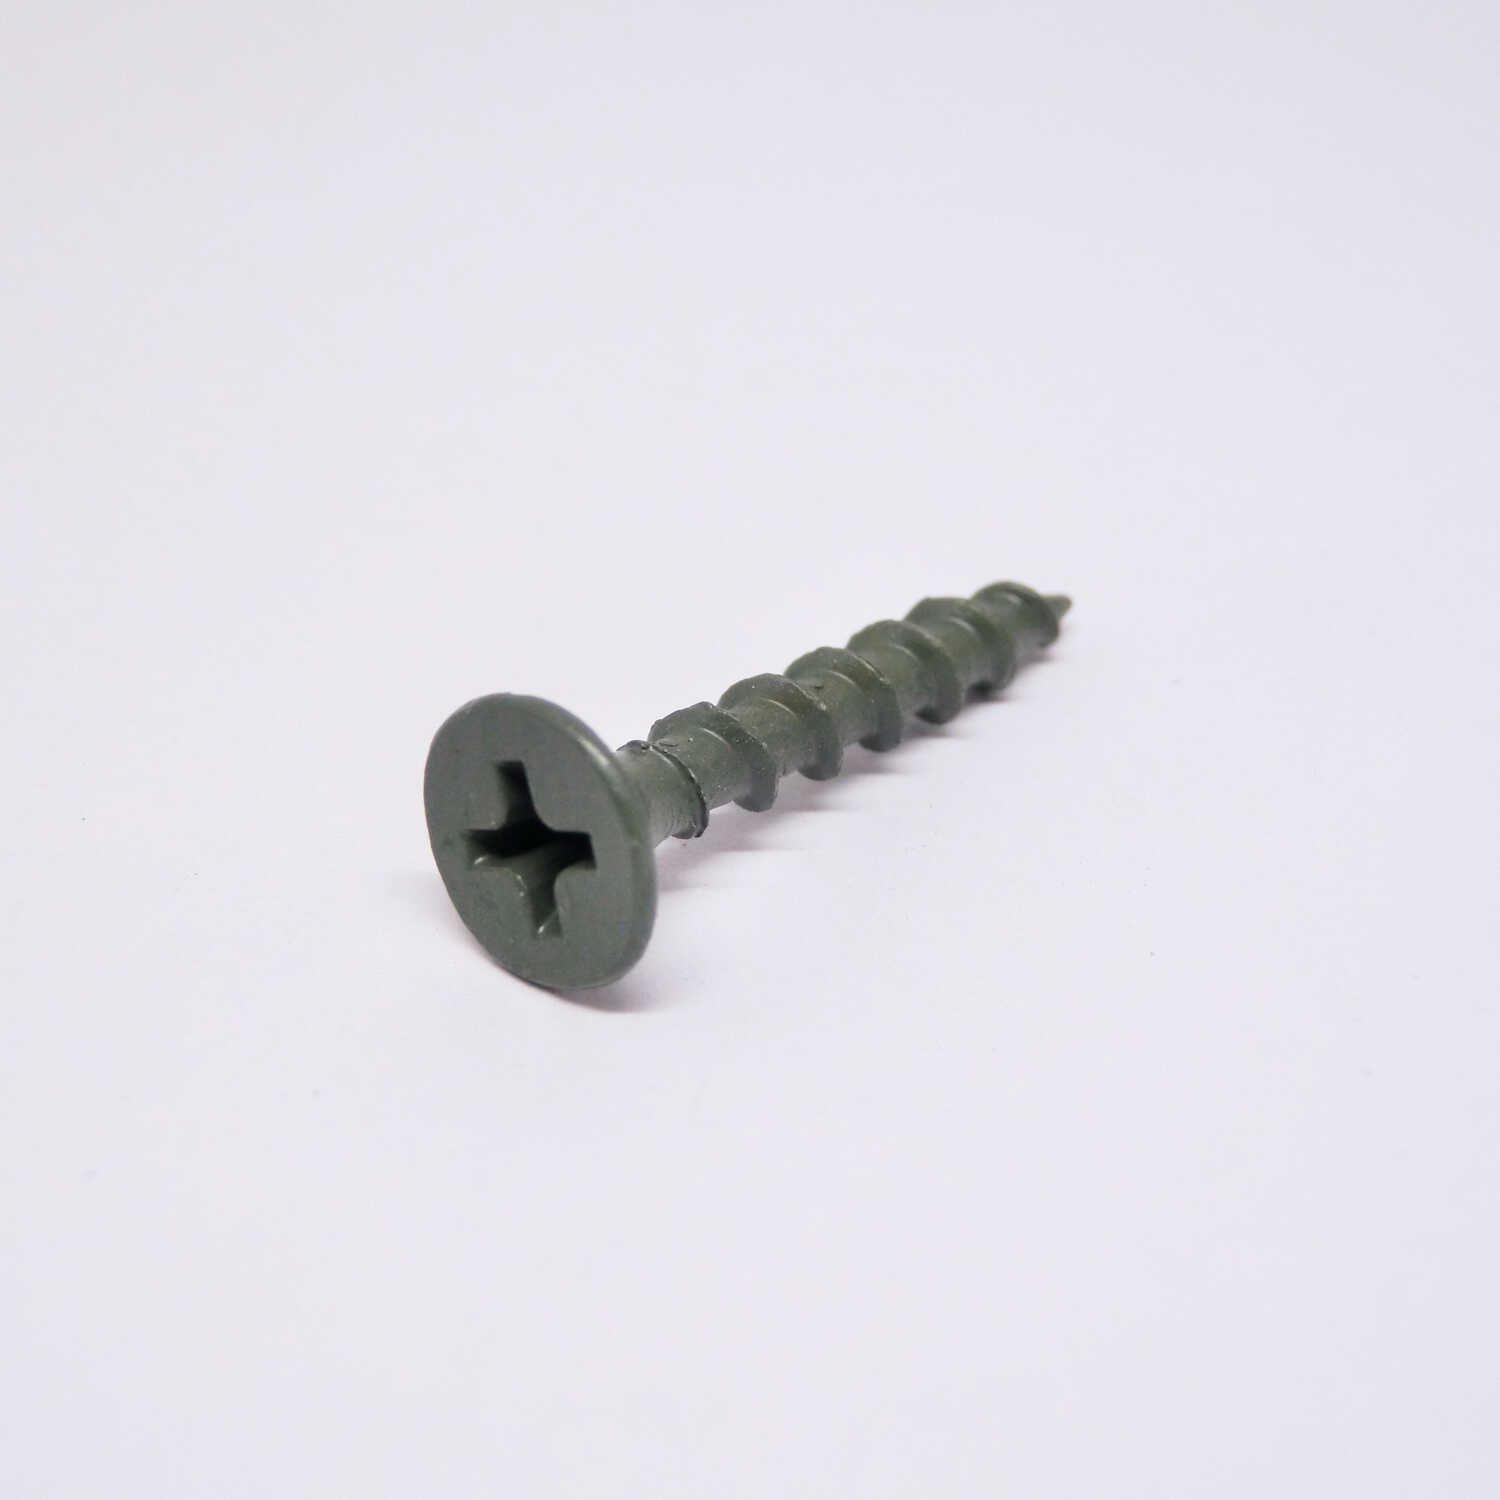 Ace  No. 6   x 1 in. L Phillips  Bugle Head Ceramic Coated  Deck Screws  25 lb. 8507 pk